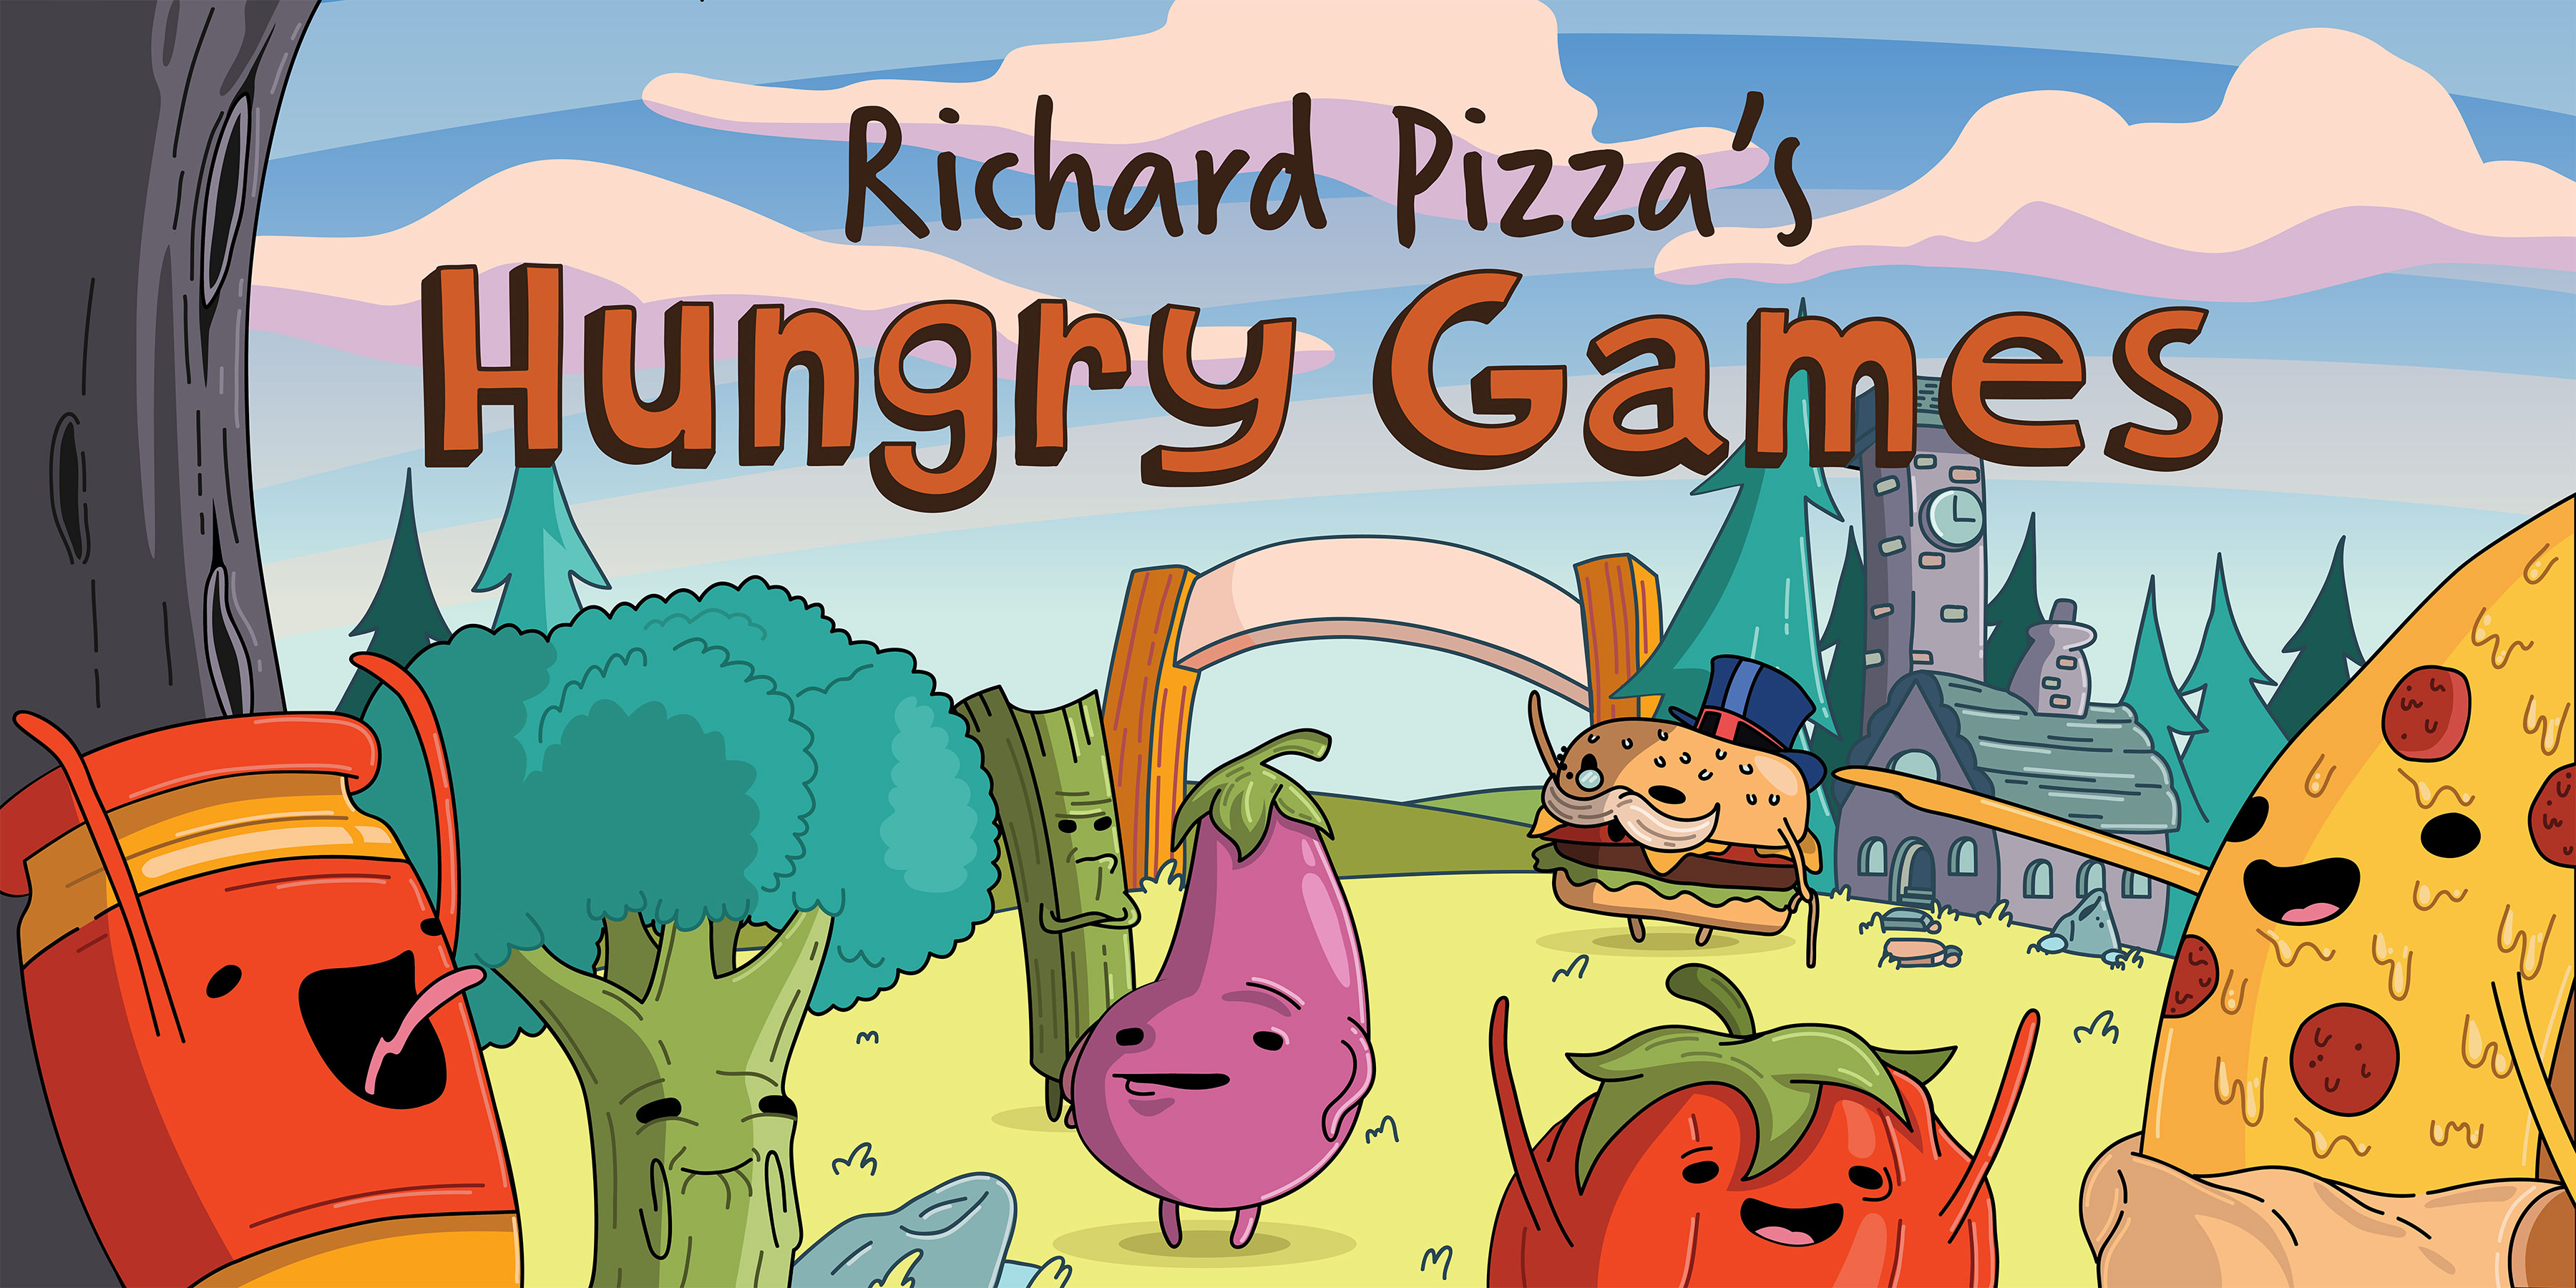 Richard Pizza's Hungry Games